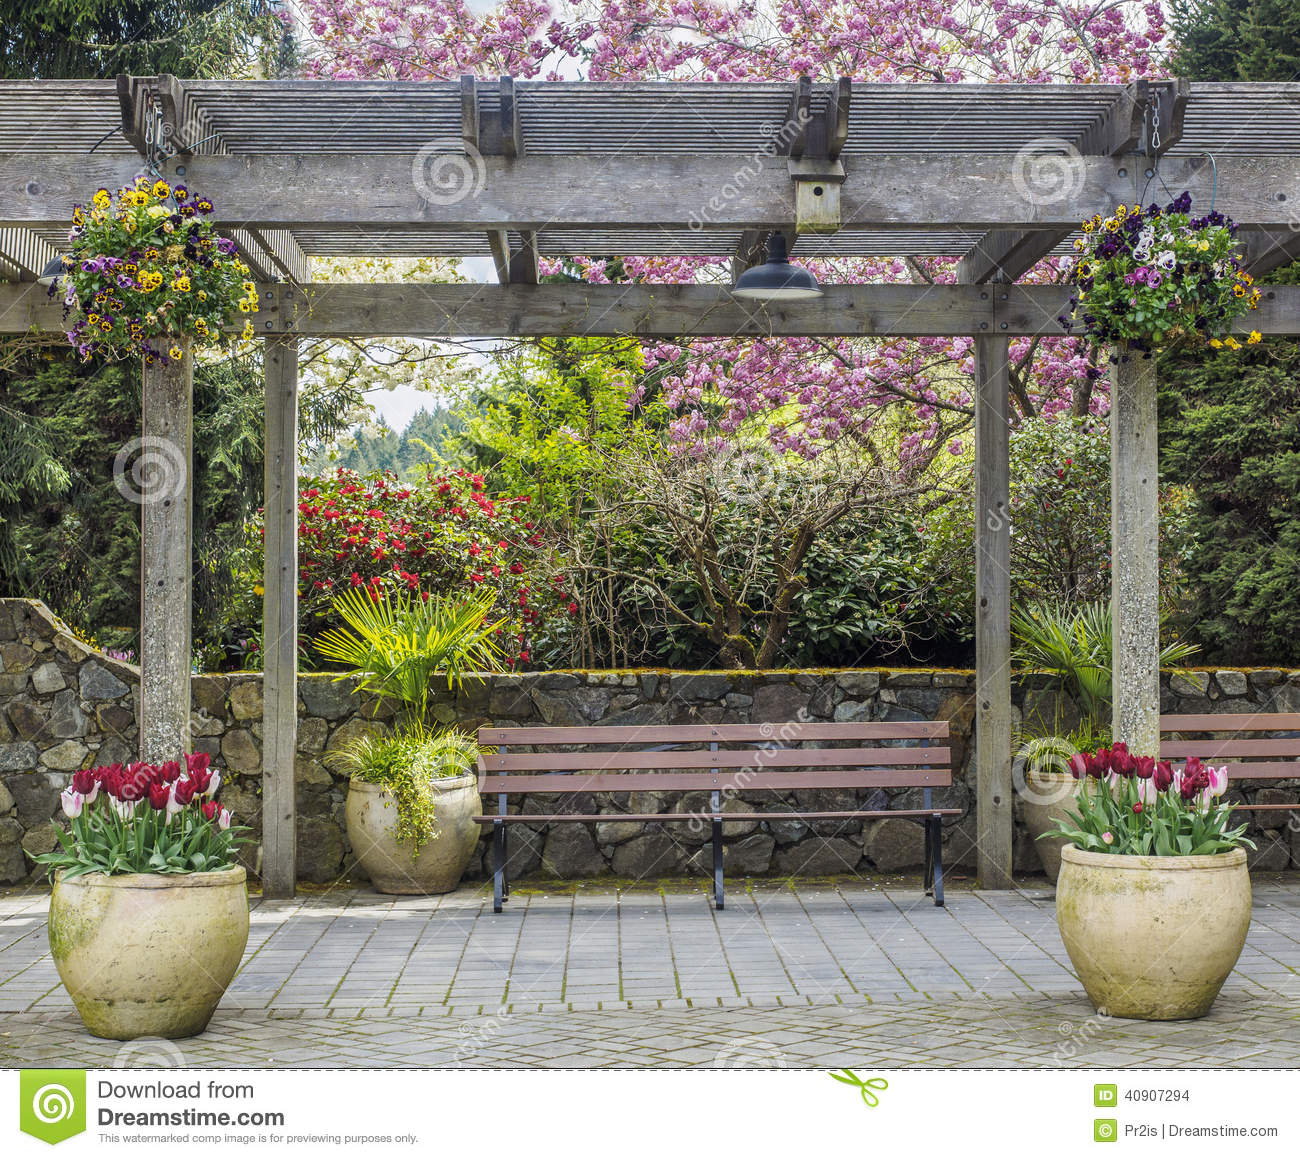 Rustic Pergola With Bench And Flower Pots Under Blossoming Cherry Tree Stock Image